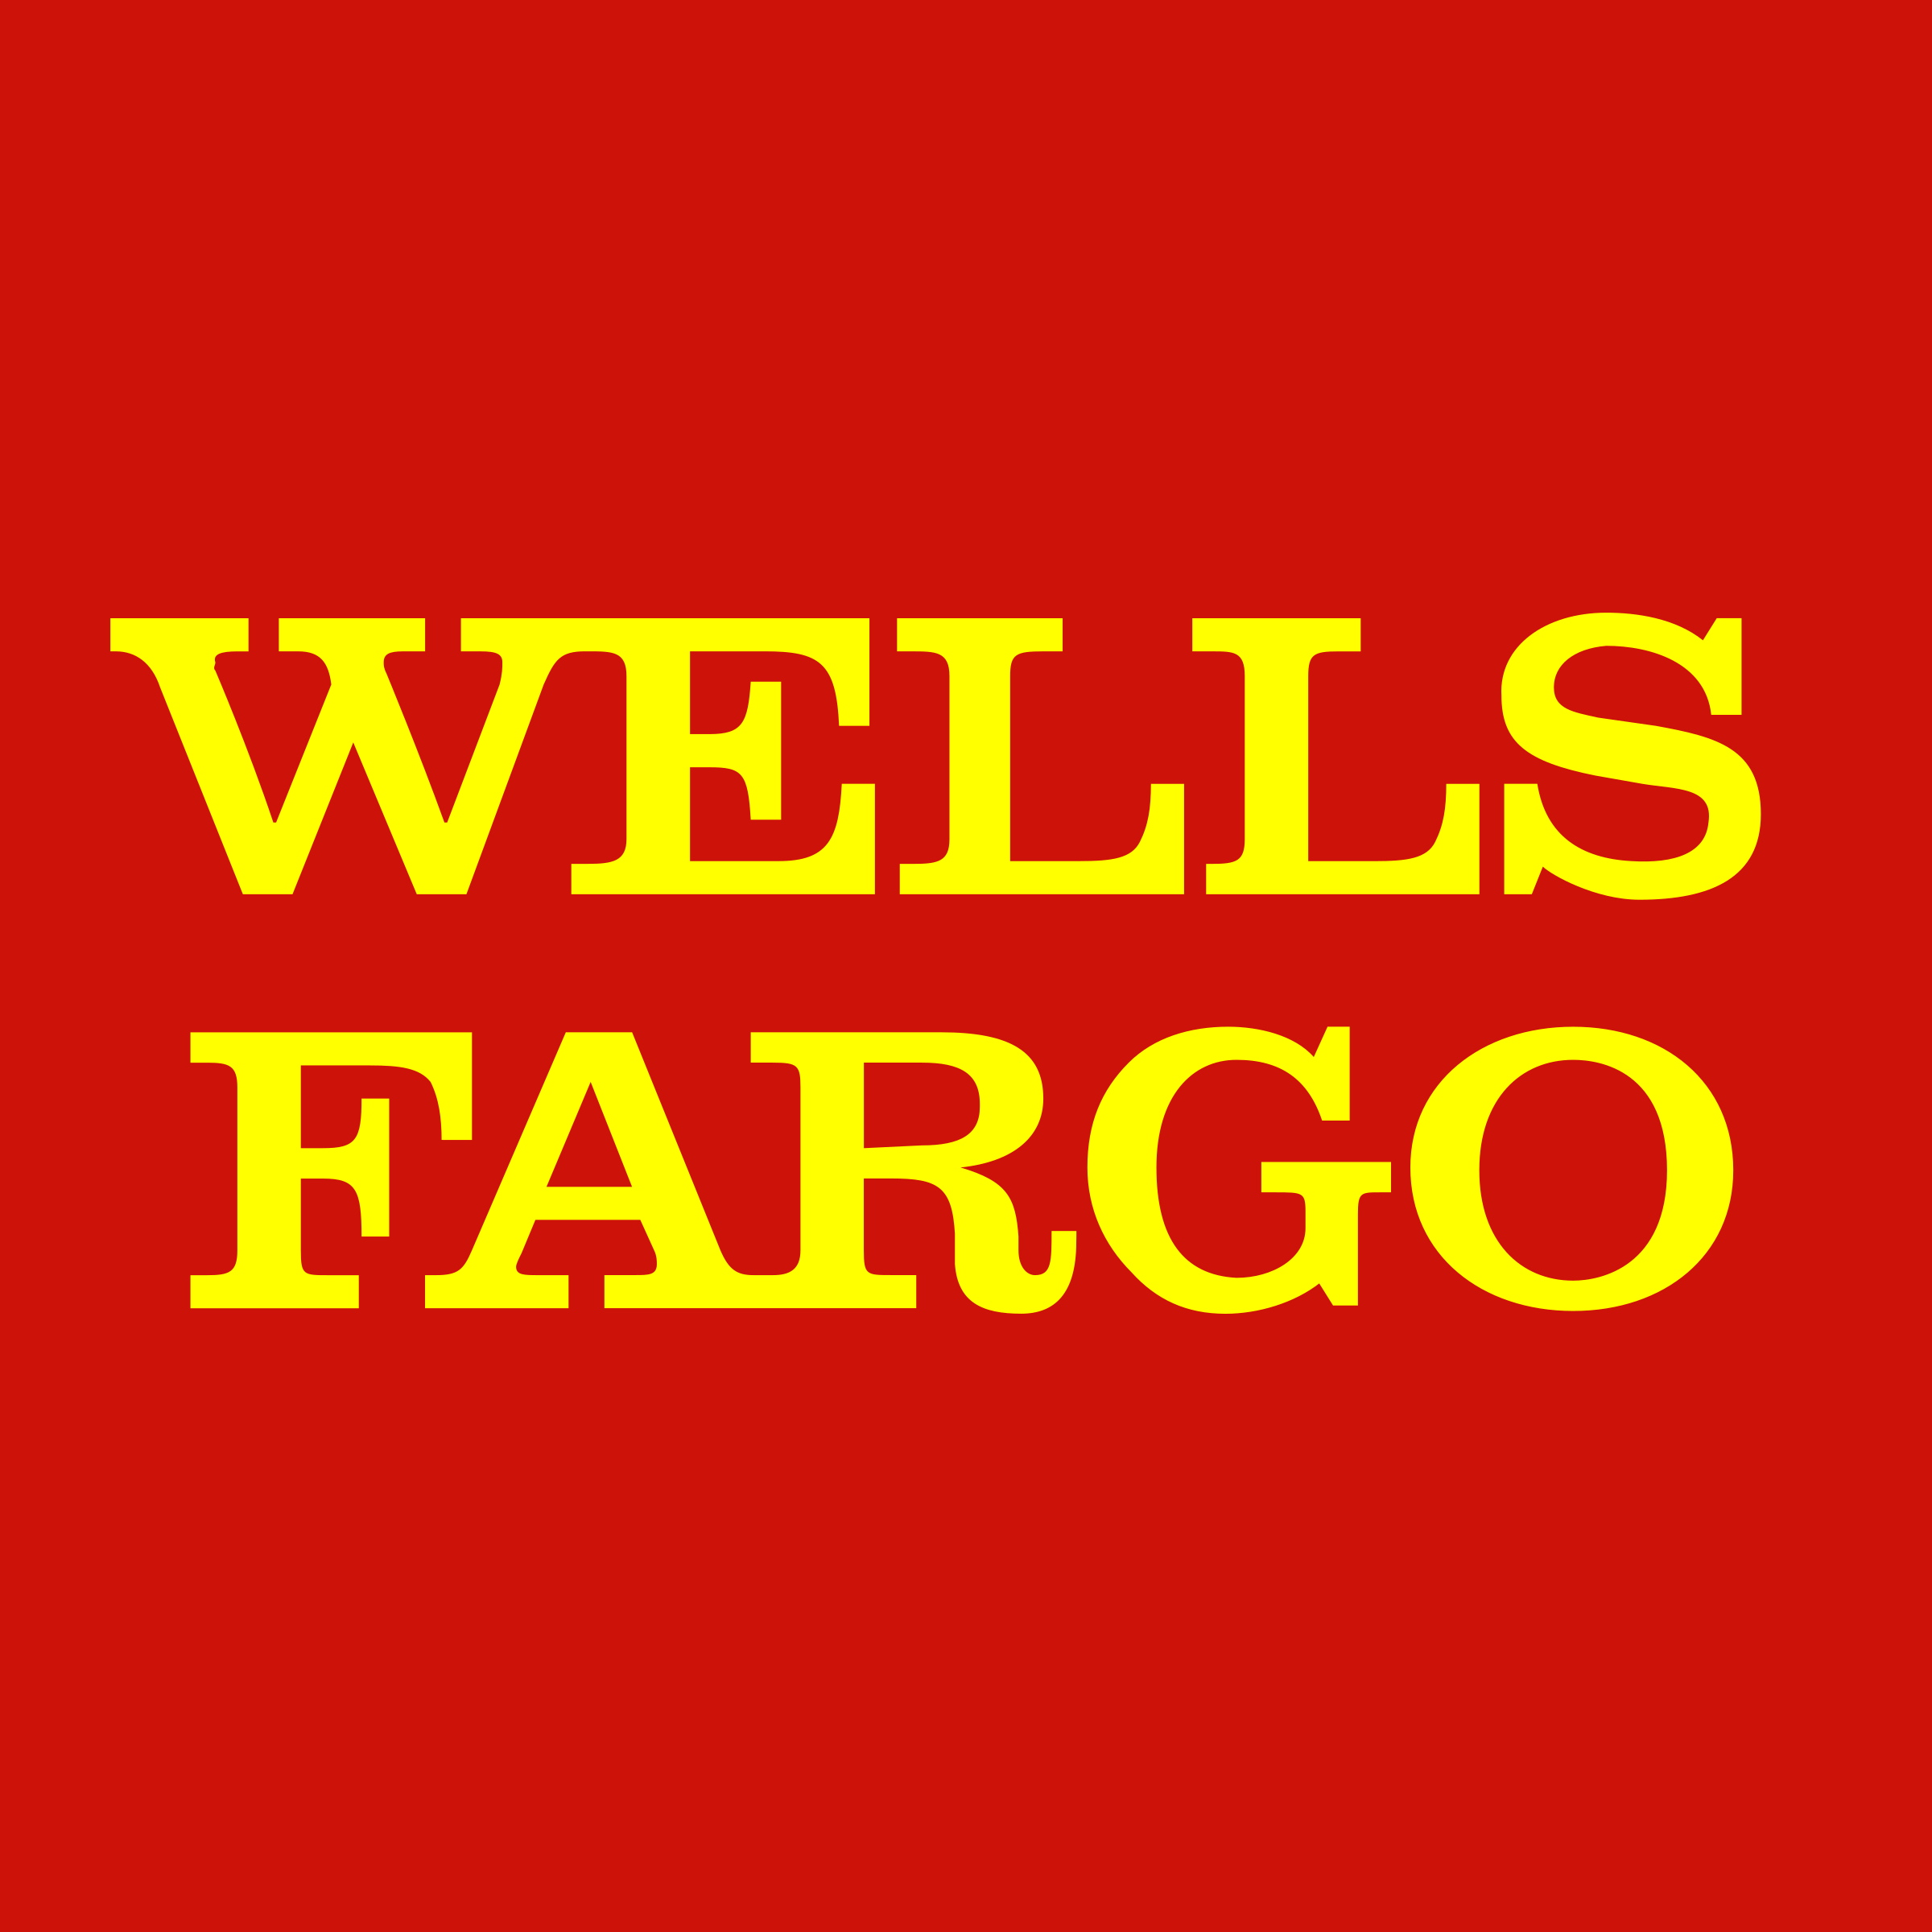 Whole Foods Or Wells Fargo